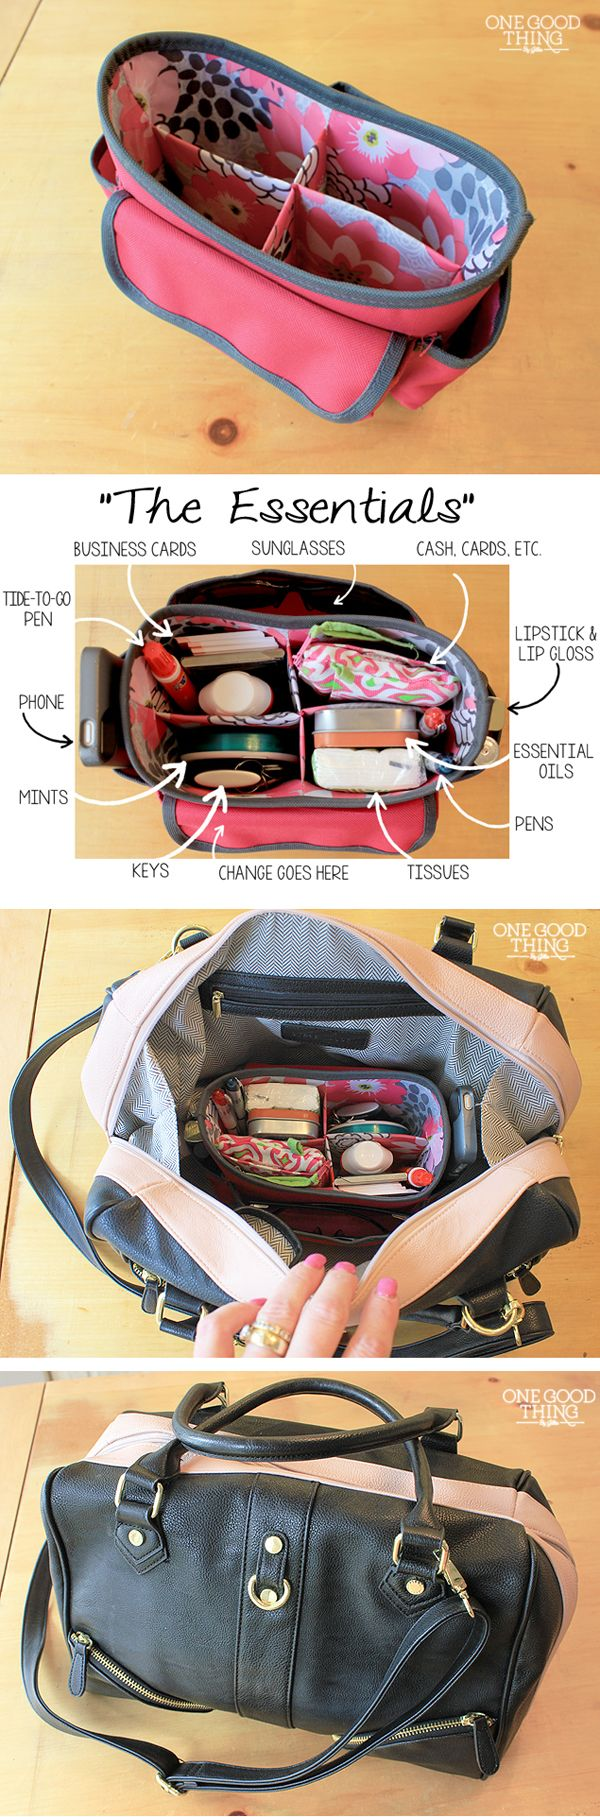 another purse organizer